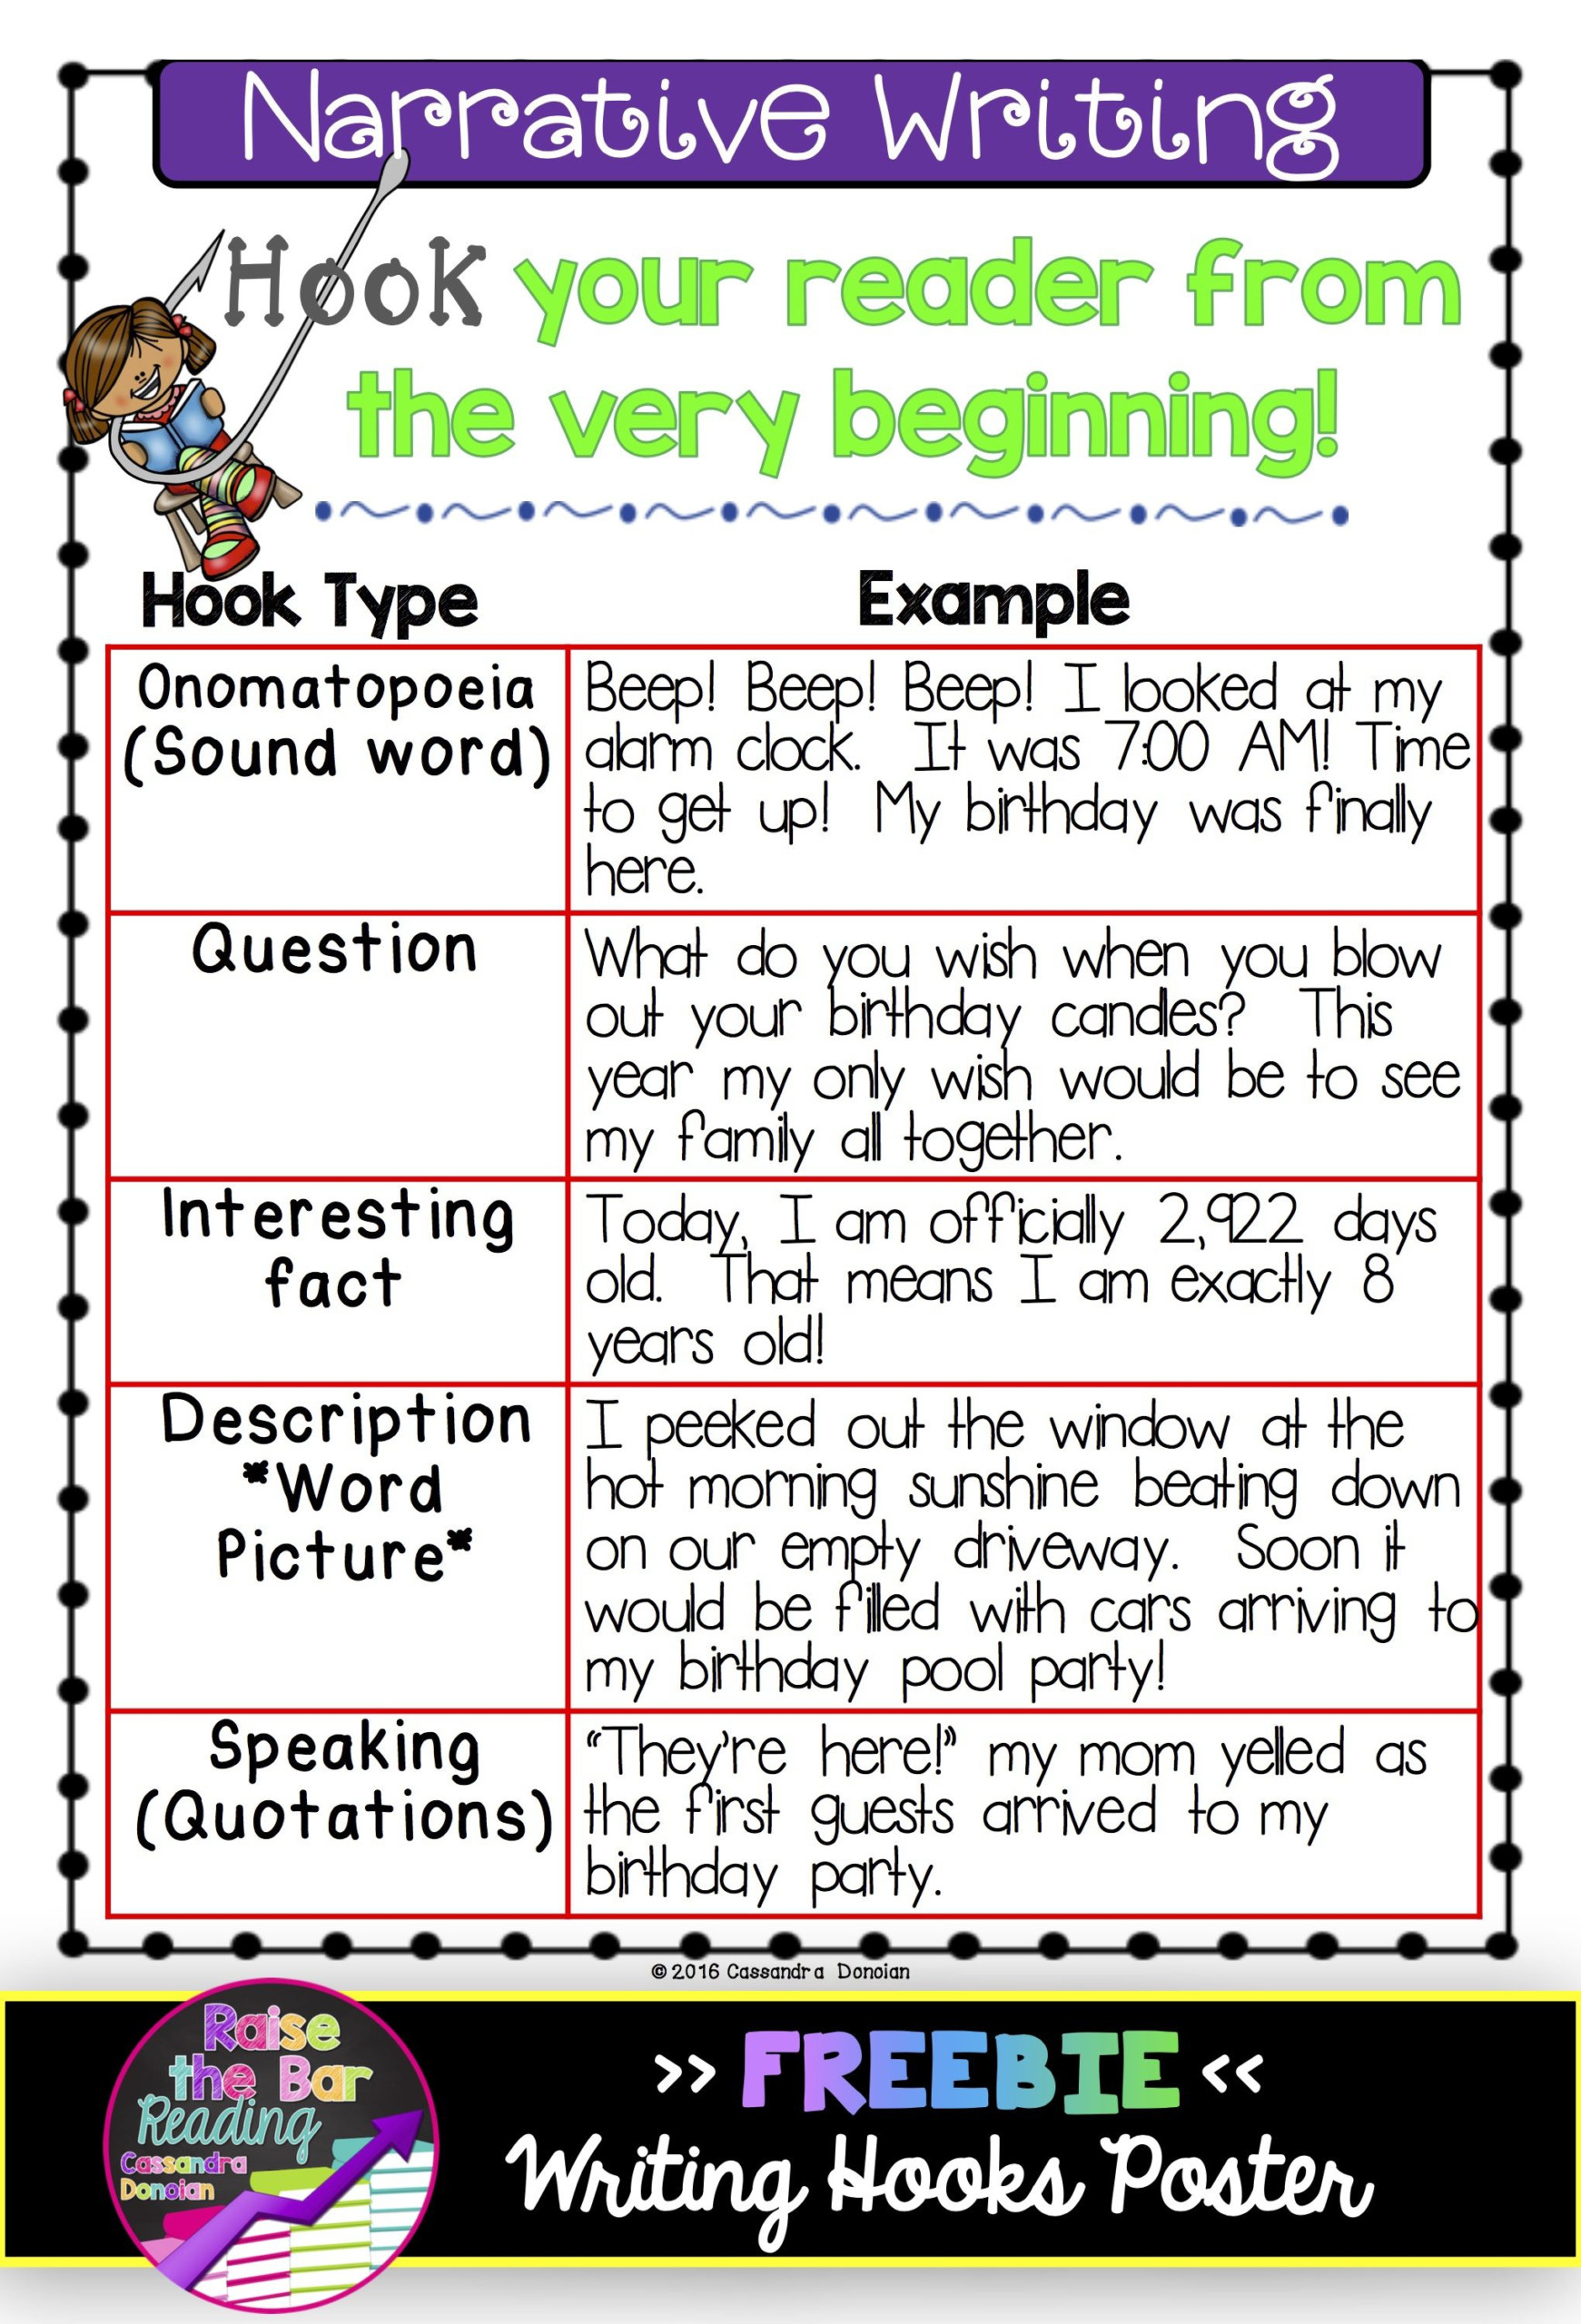 Writing Hooks Posters & Practice Sheets! Perfect For Grades